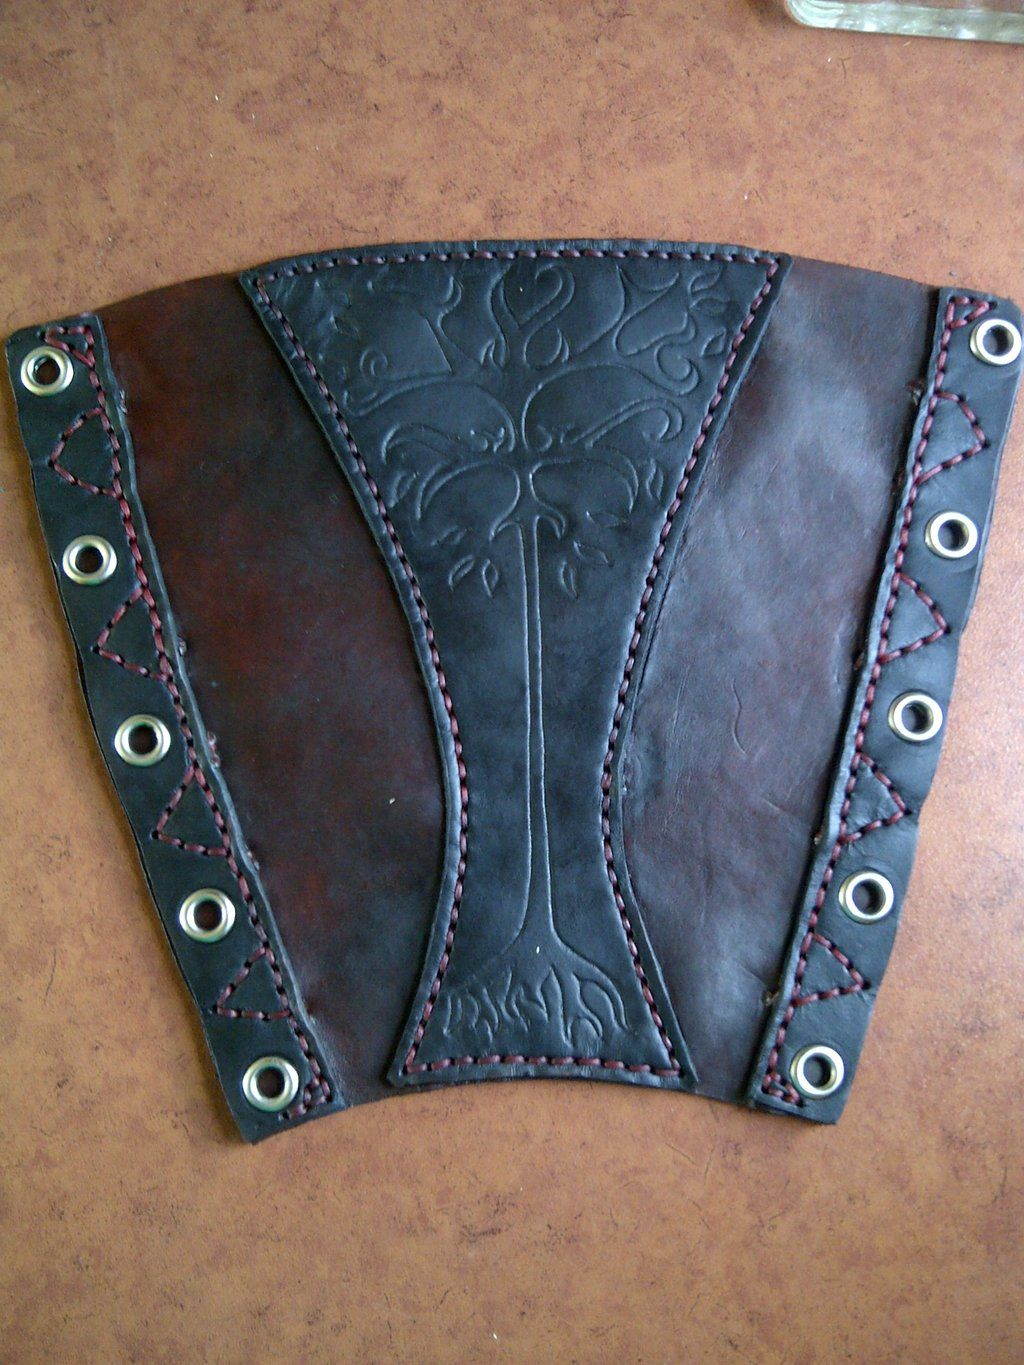 Leather Archery Arm Guard Sca Larp Armor Bracer Longbow Recurve Faire Hunting Sporting Goods